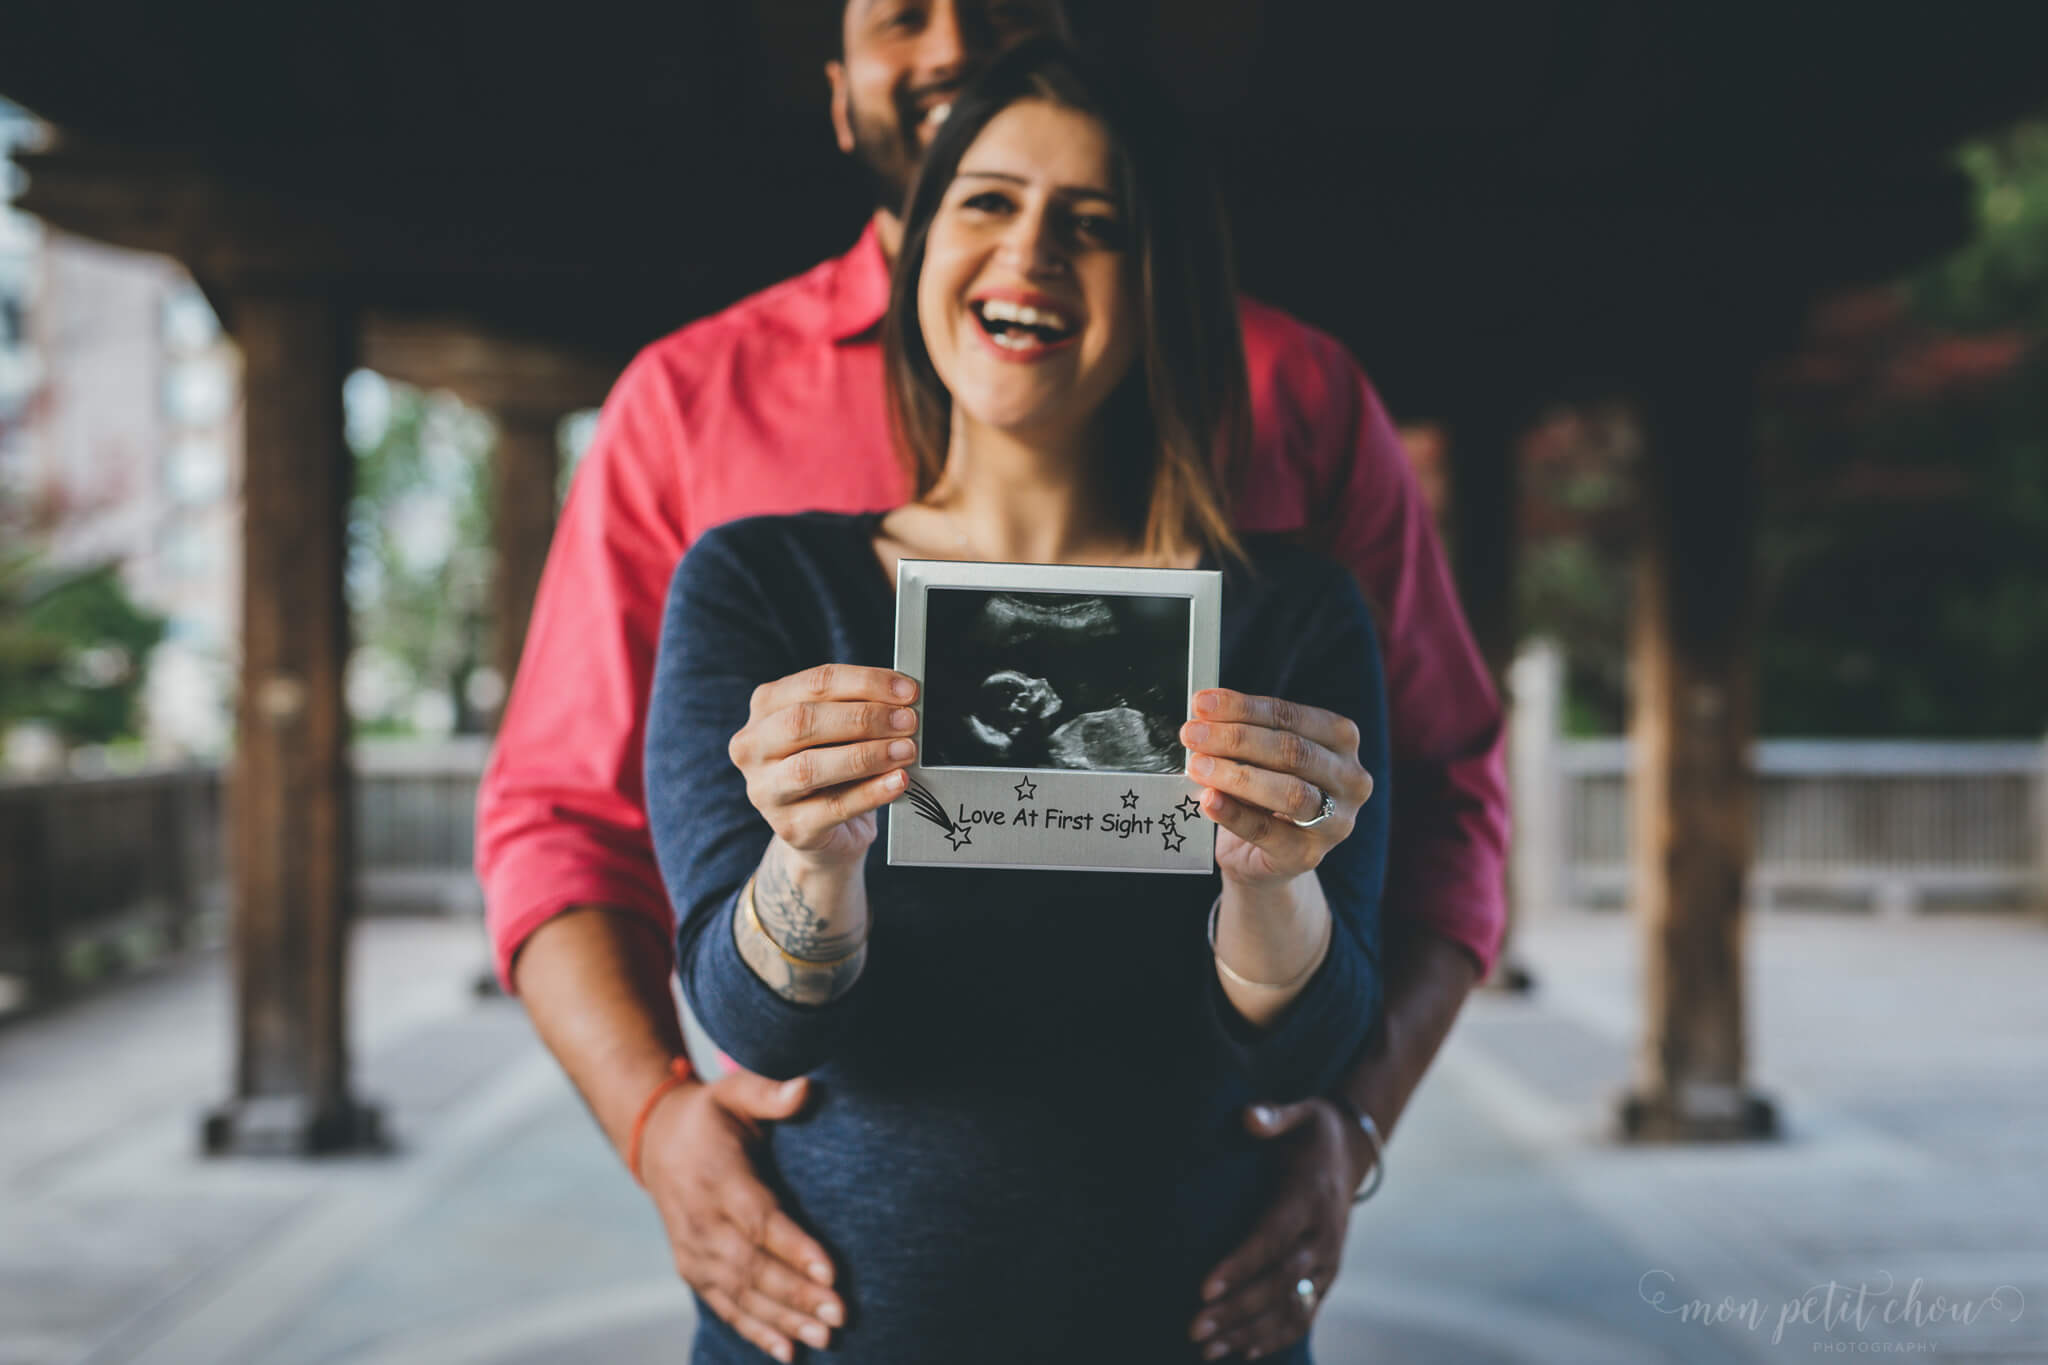 Pregnant lady holding an ultrasound picture during a maternity portrait shoot in Kariya Park Toronto